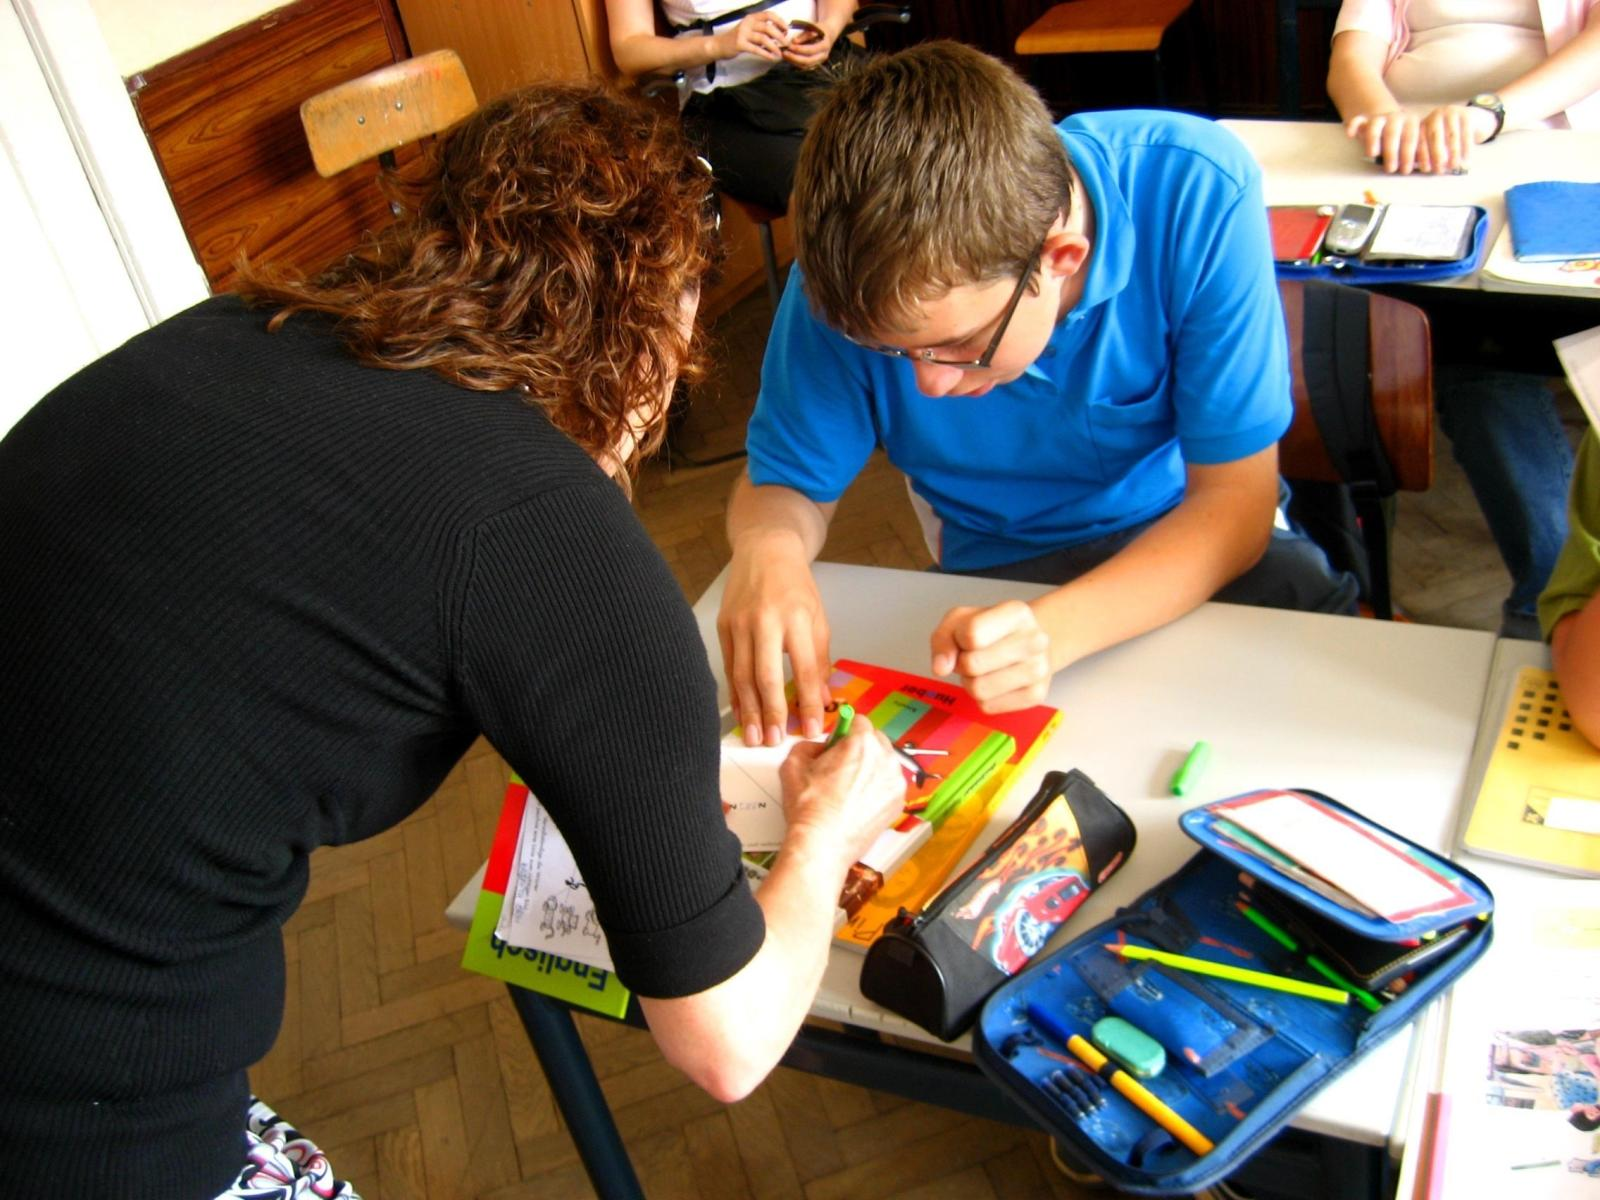 Projects Abroad volunteer helps a student with his classwork during her Childcare Project in Romania